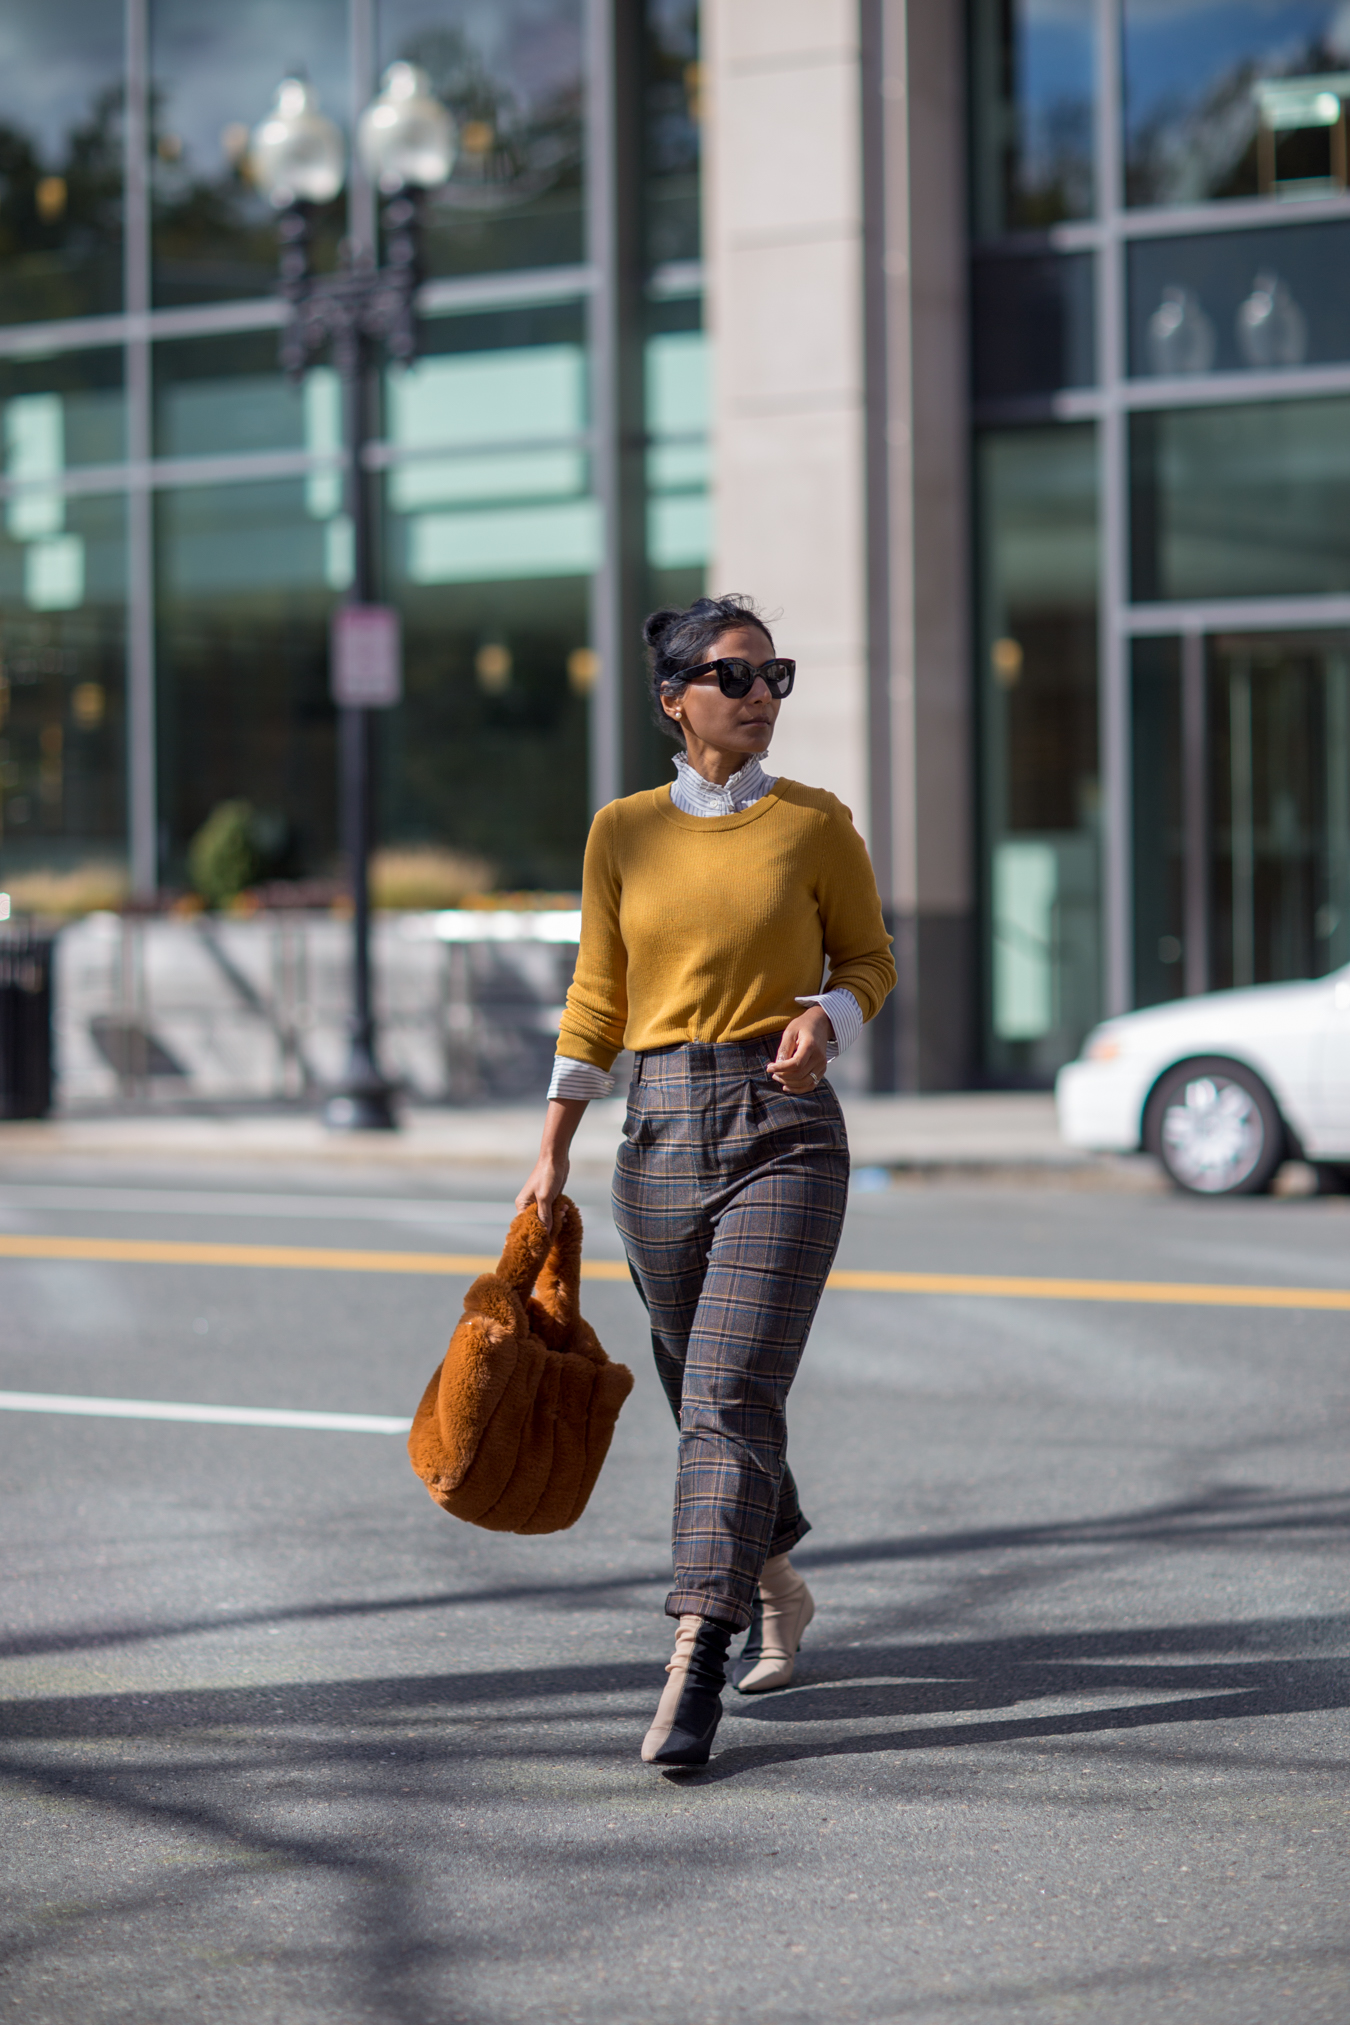 edb1bee0b09 WHAT TO WEAR TO WORK IN THE FALL